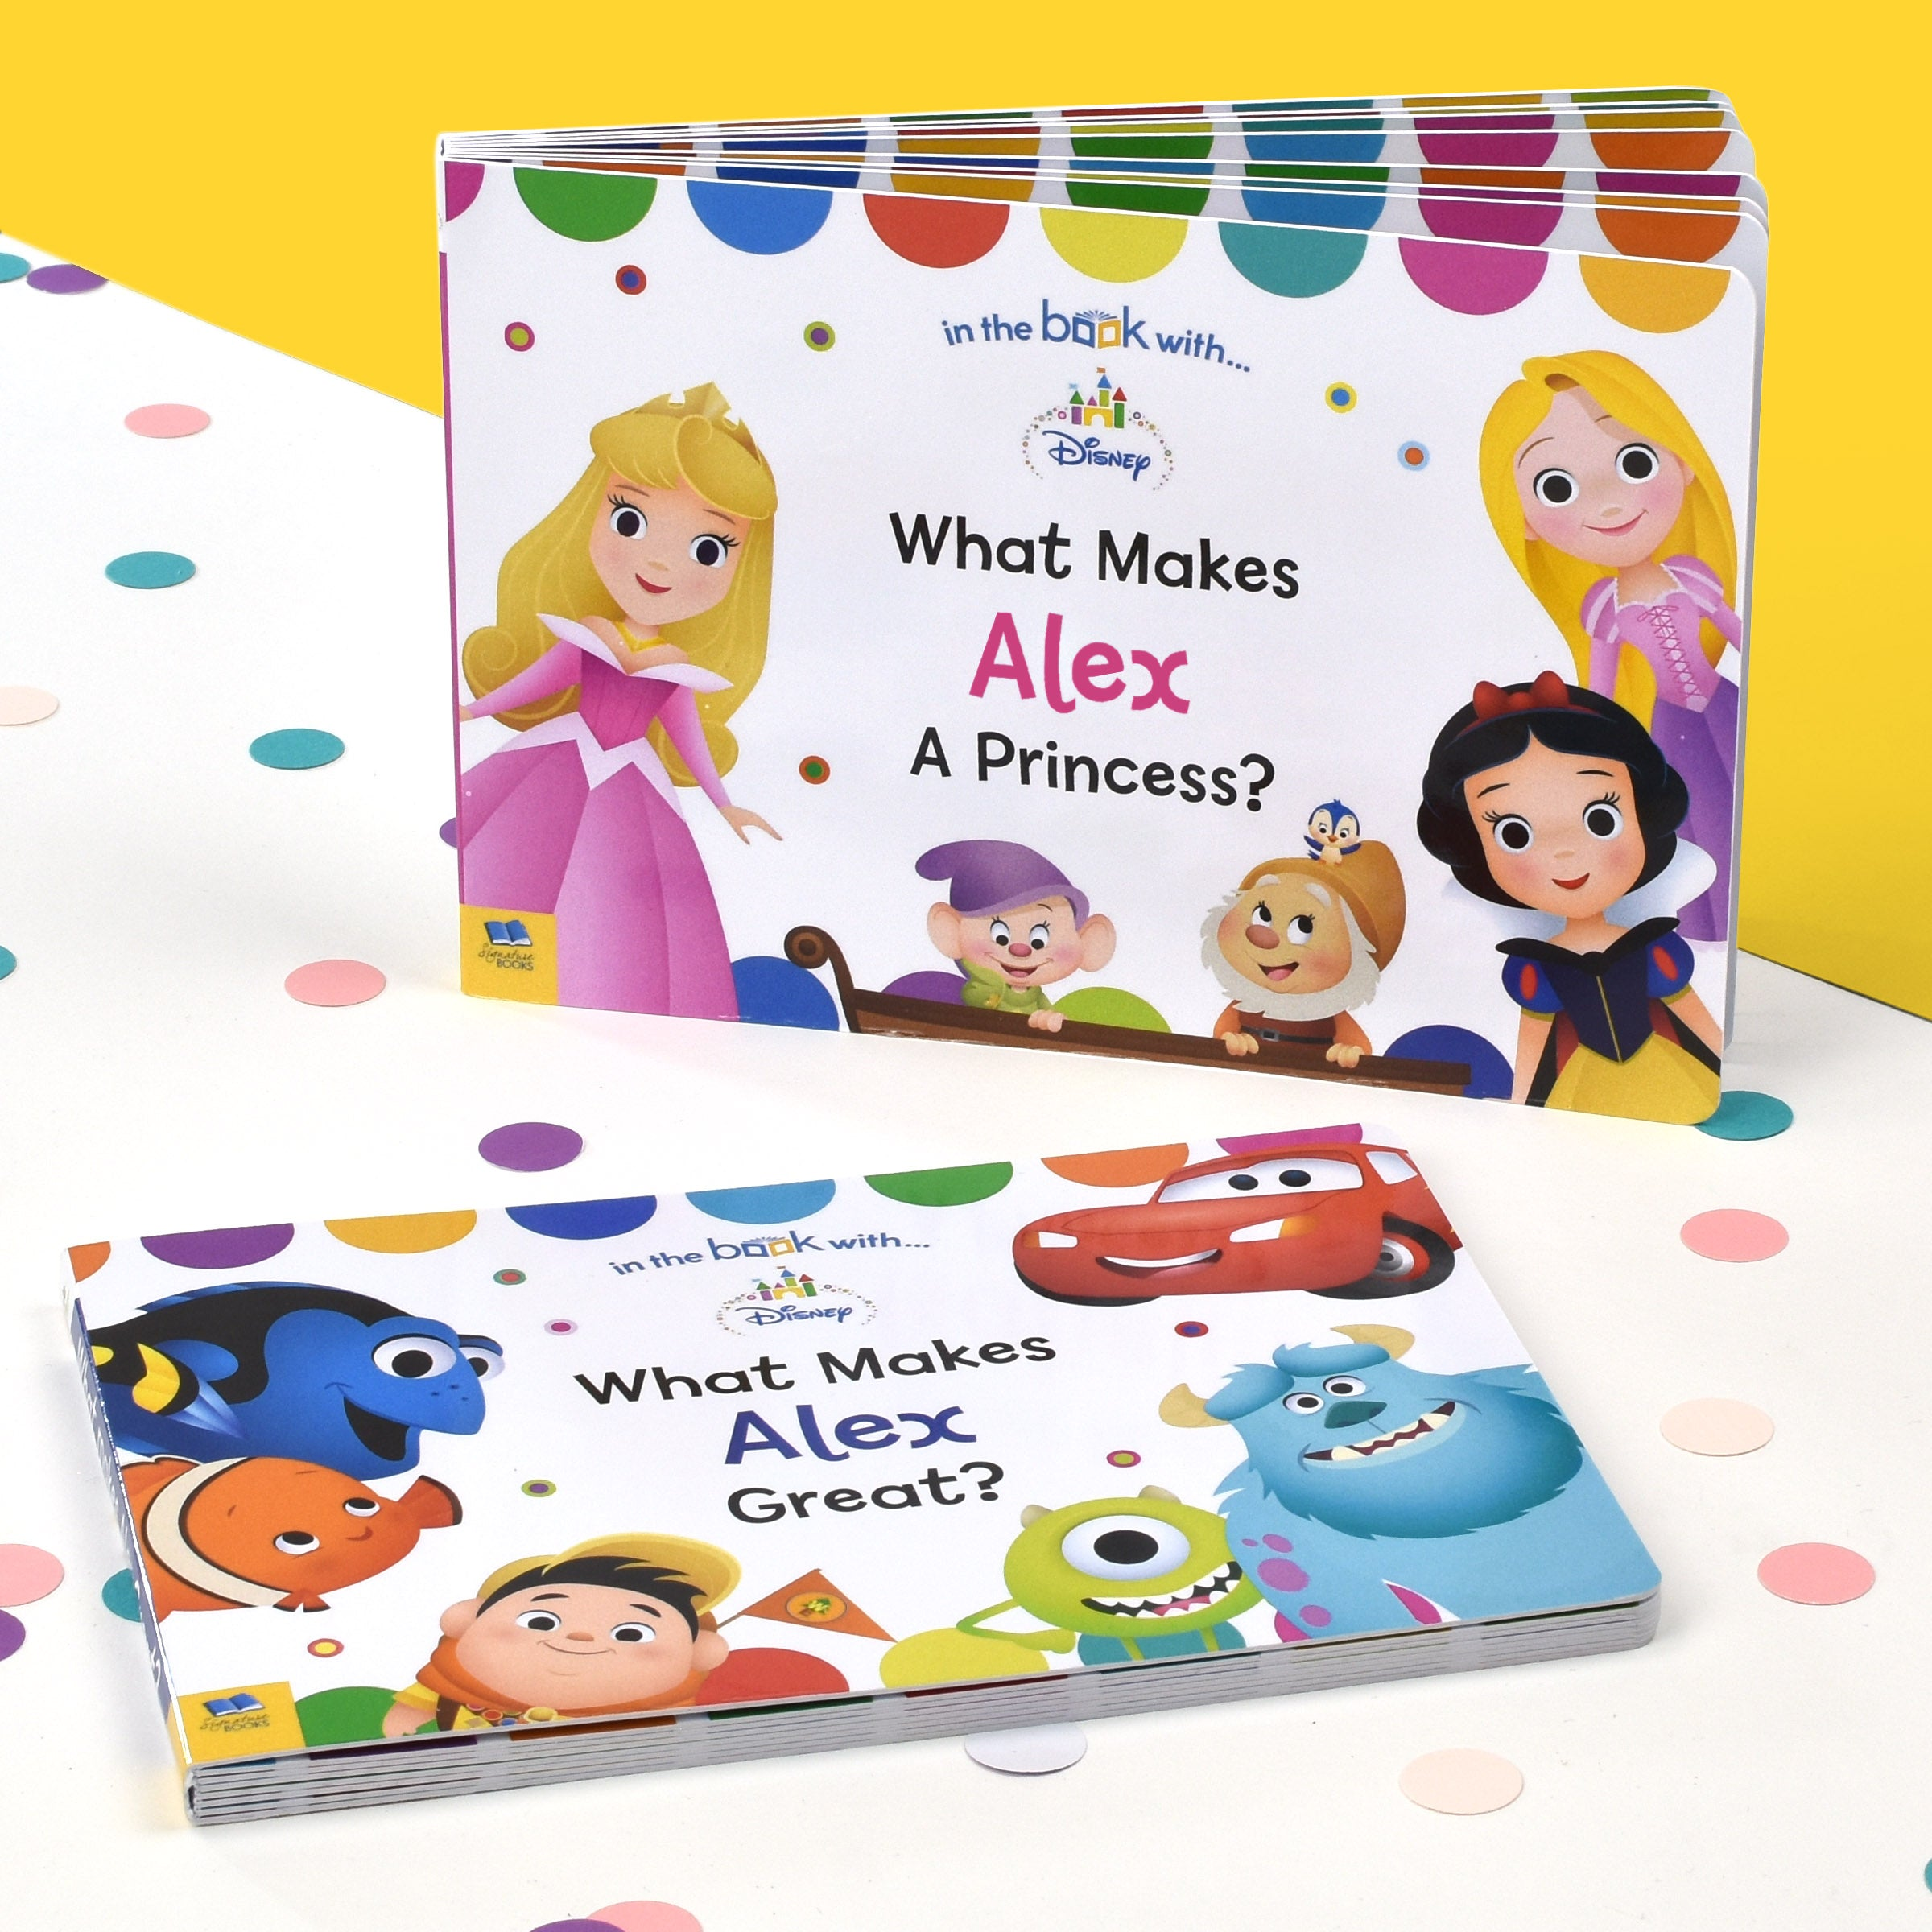 Personalised Dual Box-Set Disney Board Books, Scrapbooking & Stamping Kits by Sports Gifts Direct